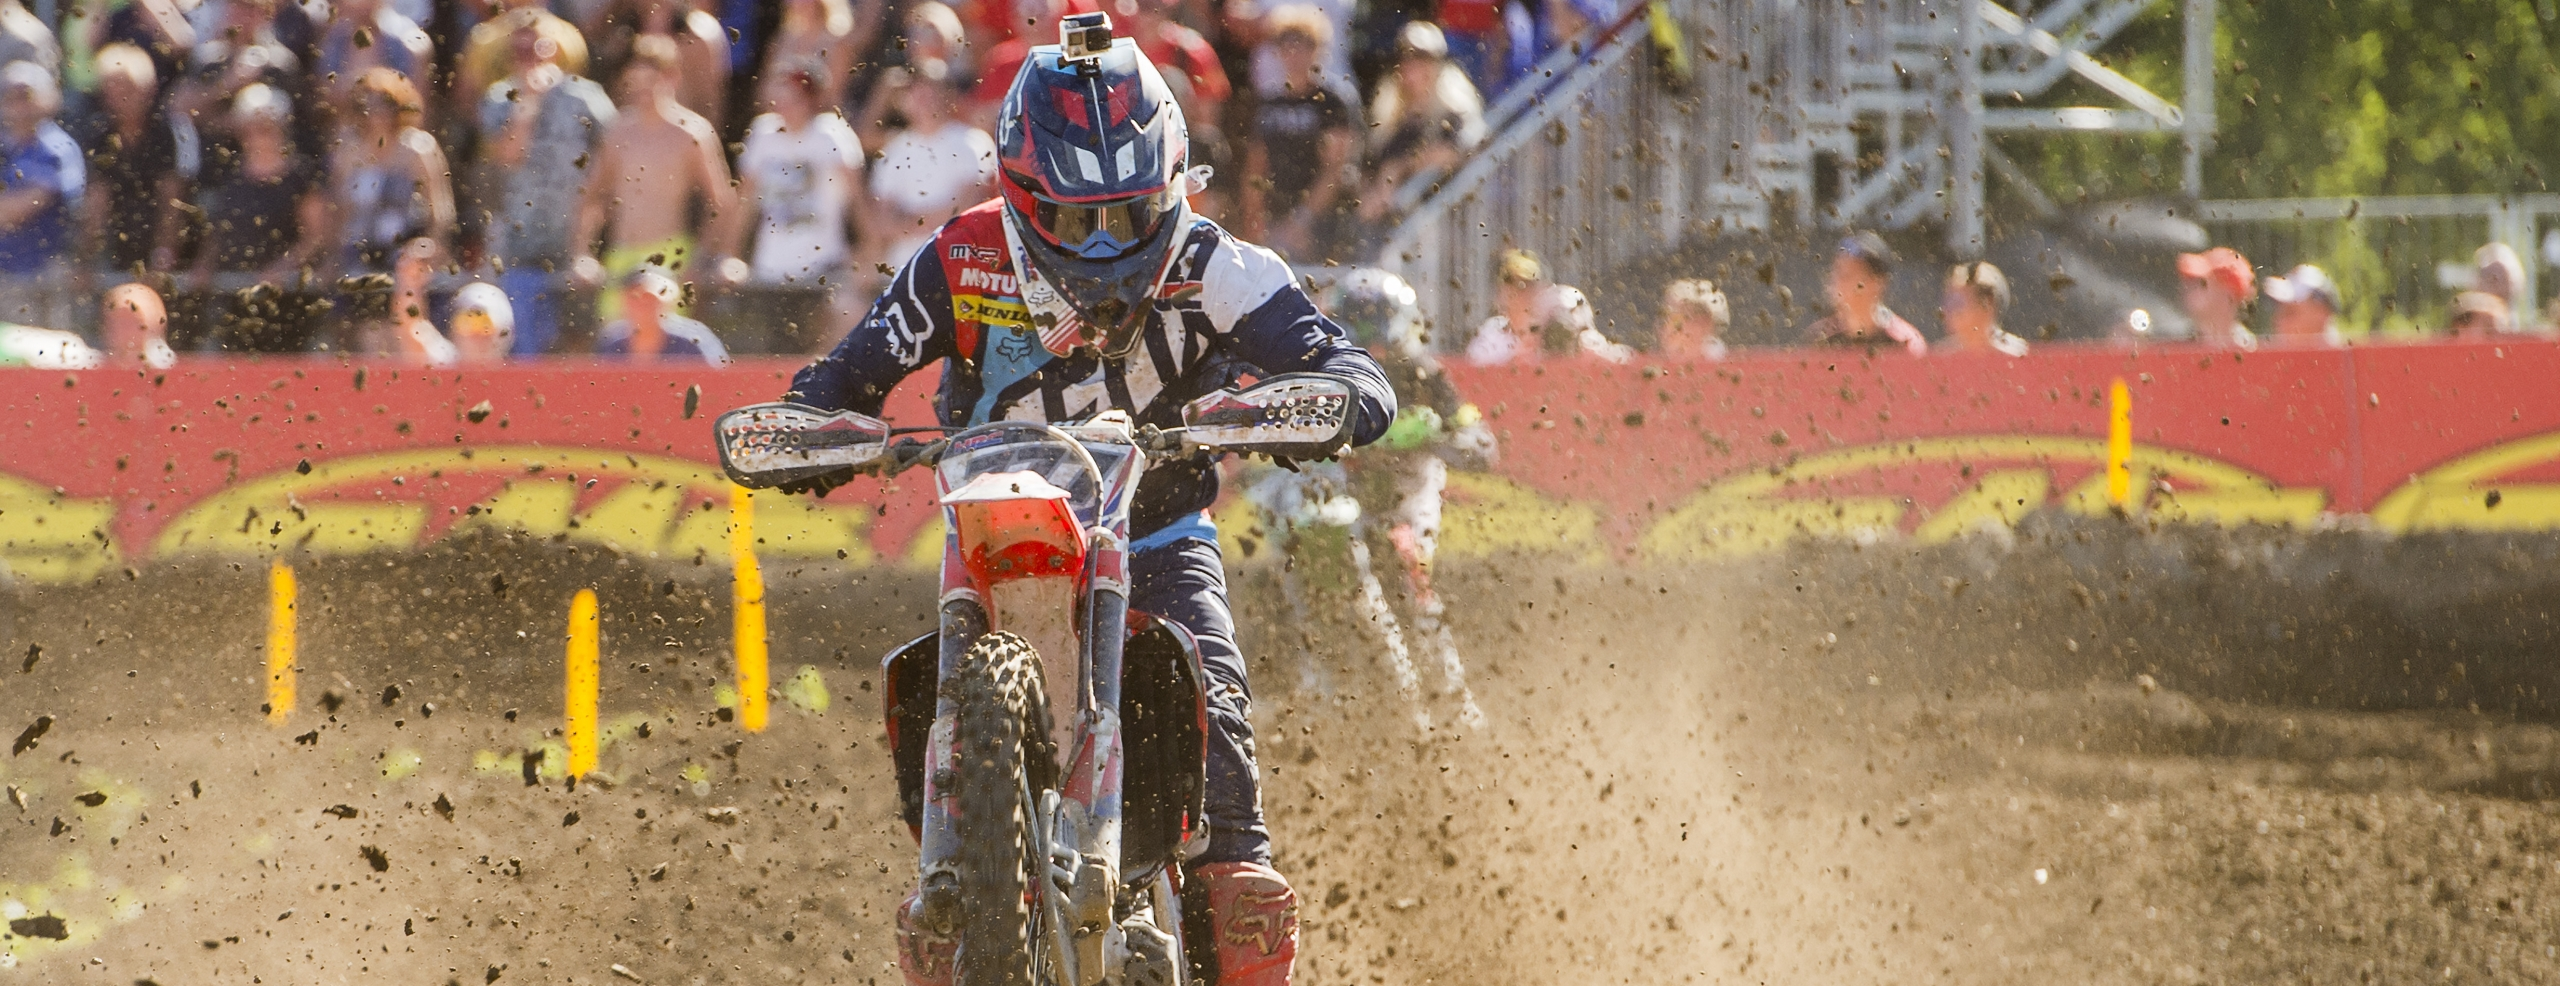 Team HRC prepared for final flurry of 2016 races